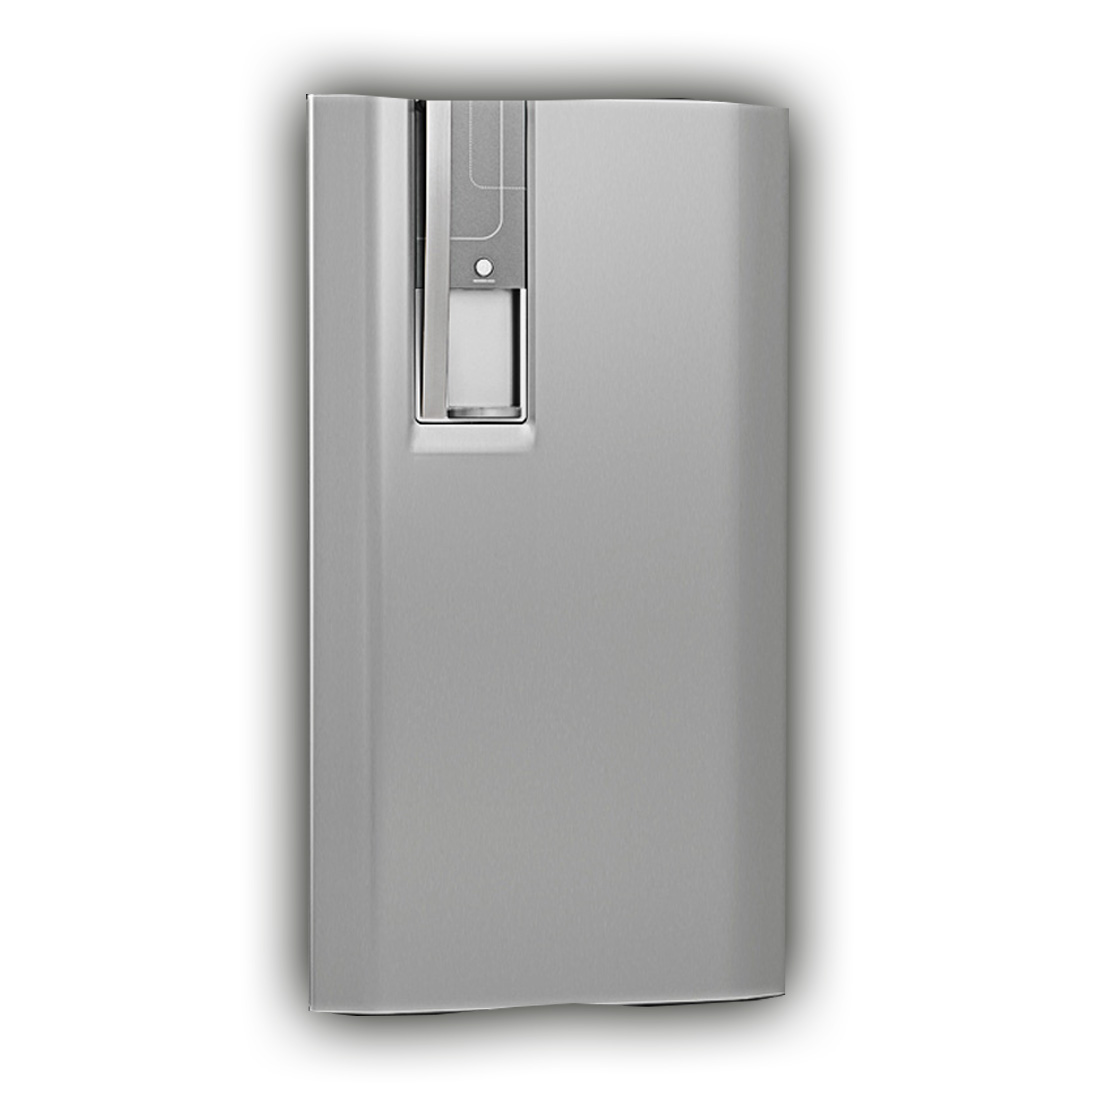 Porta Do Freezer Vertical Dw52X - 70201753